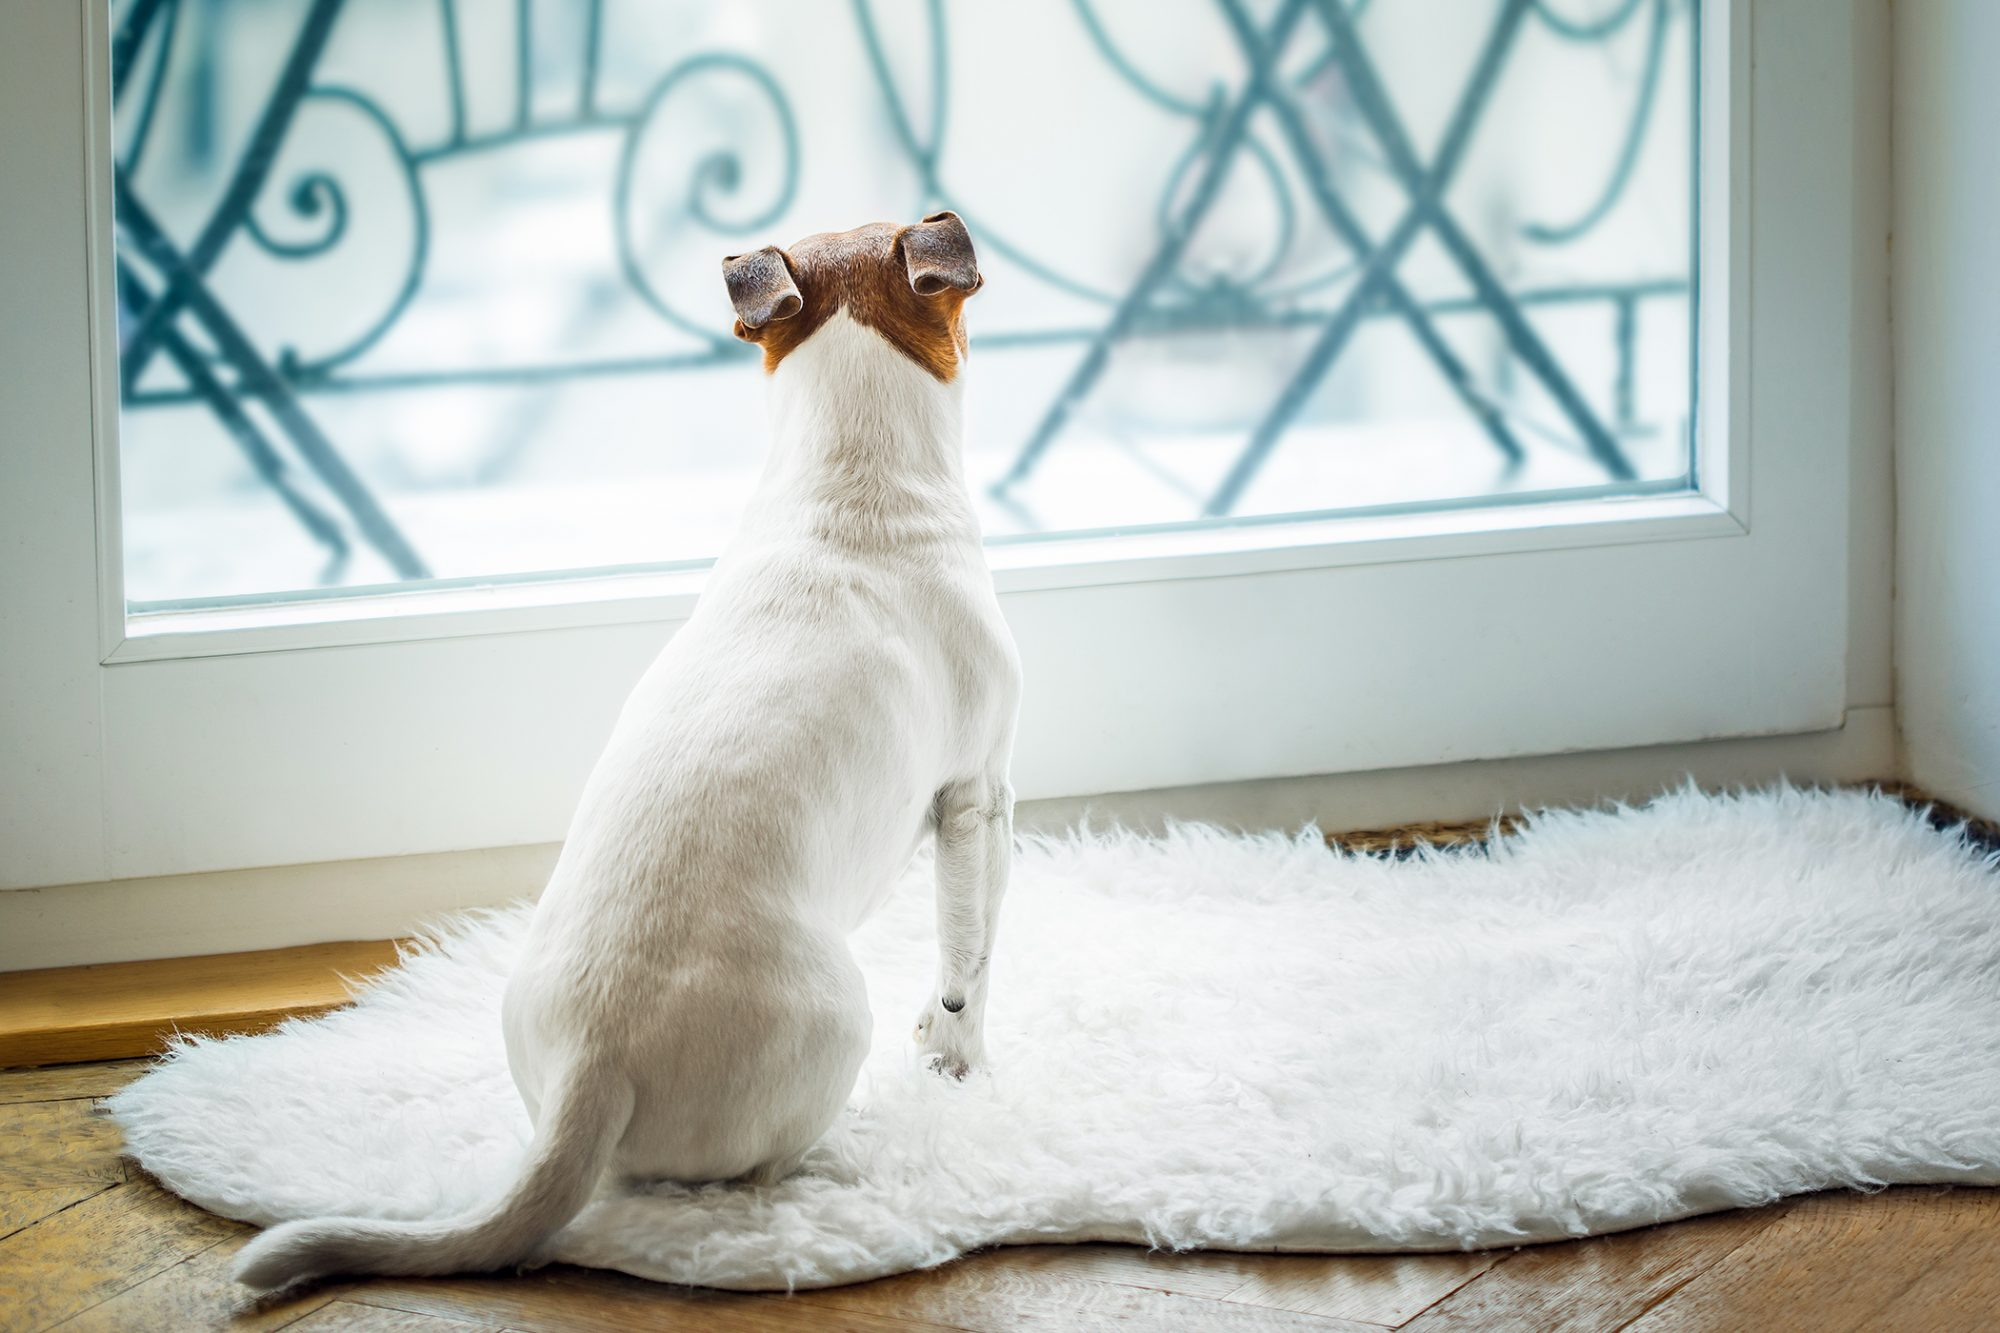 Dog looks out window while sitting on rug